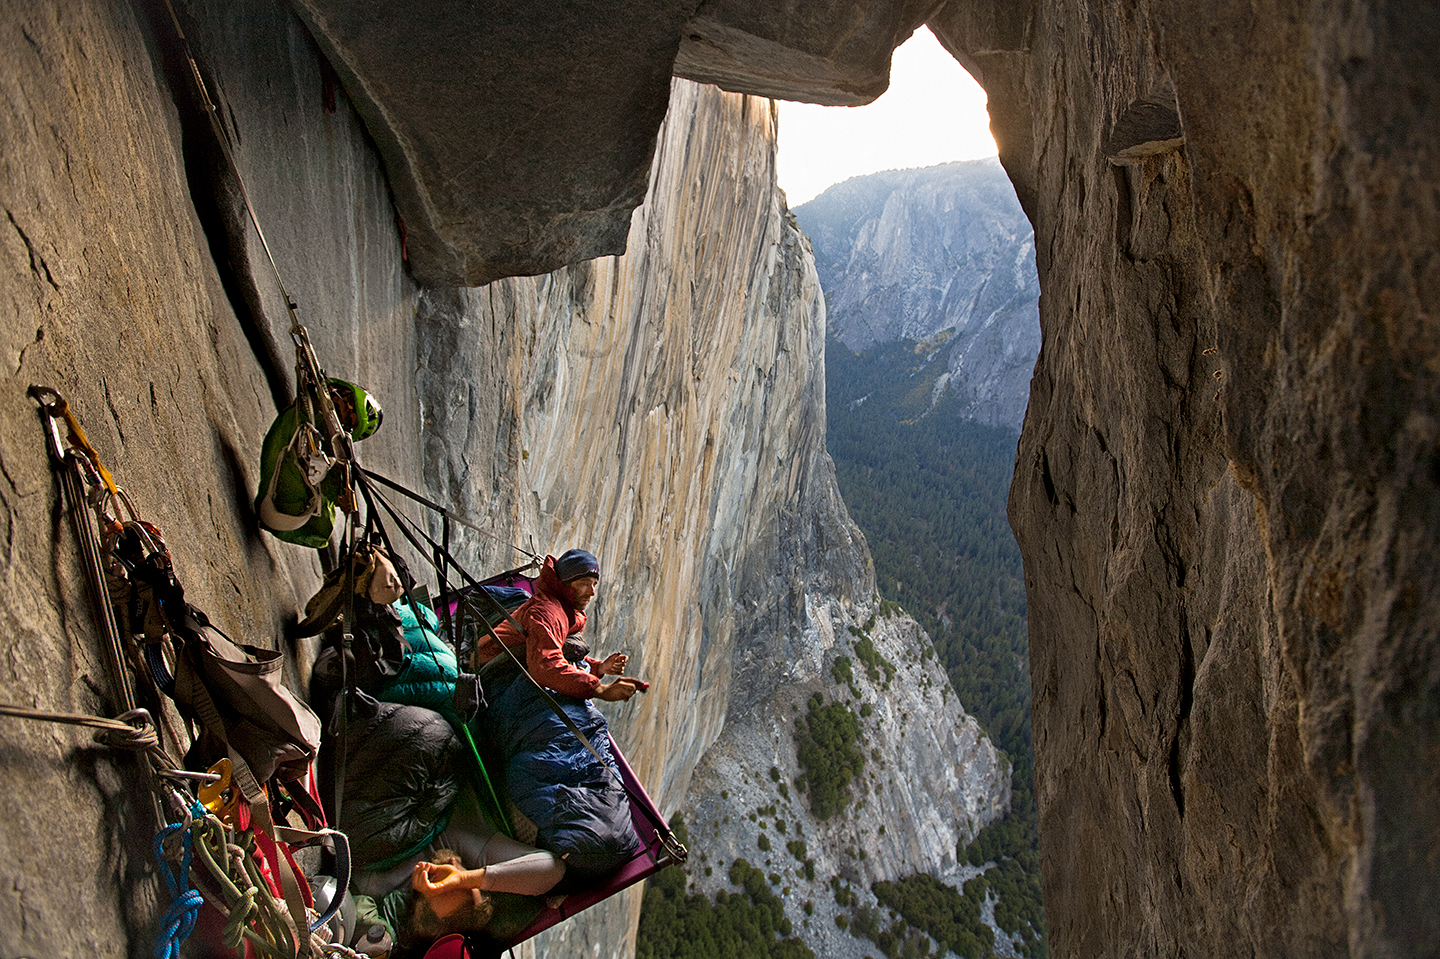 Keith Malloy and Timmy O'Neil. The North American Wall, El Capitan, Yosemite Valley, California